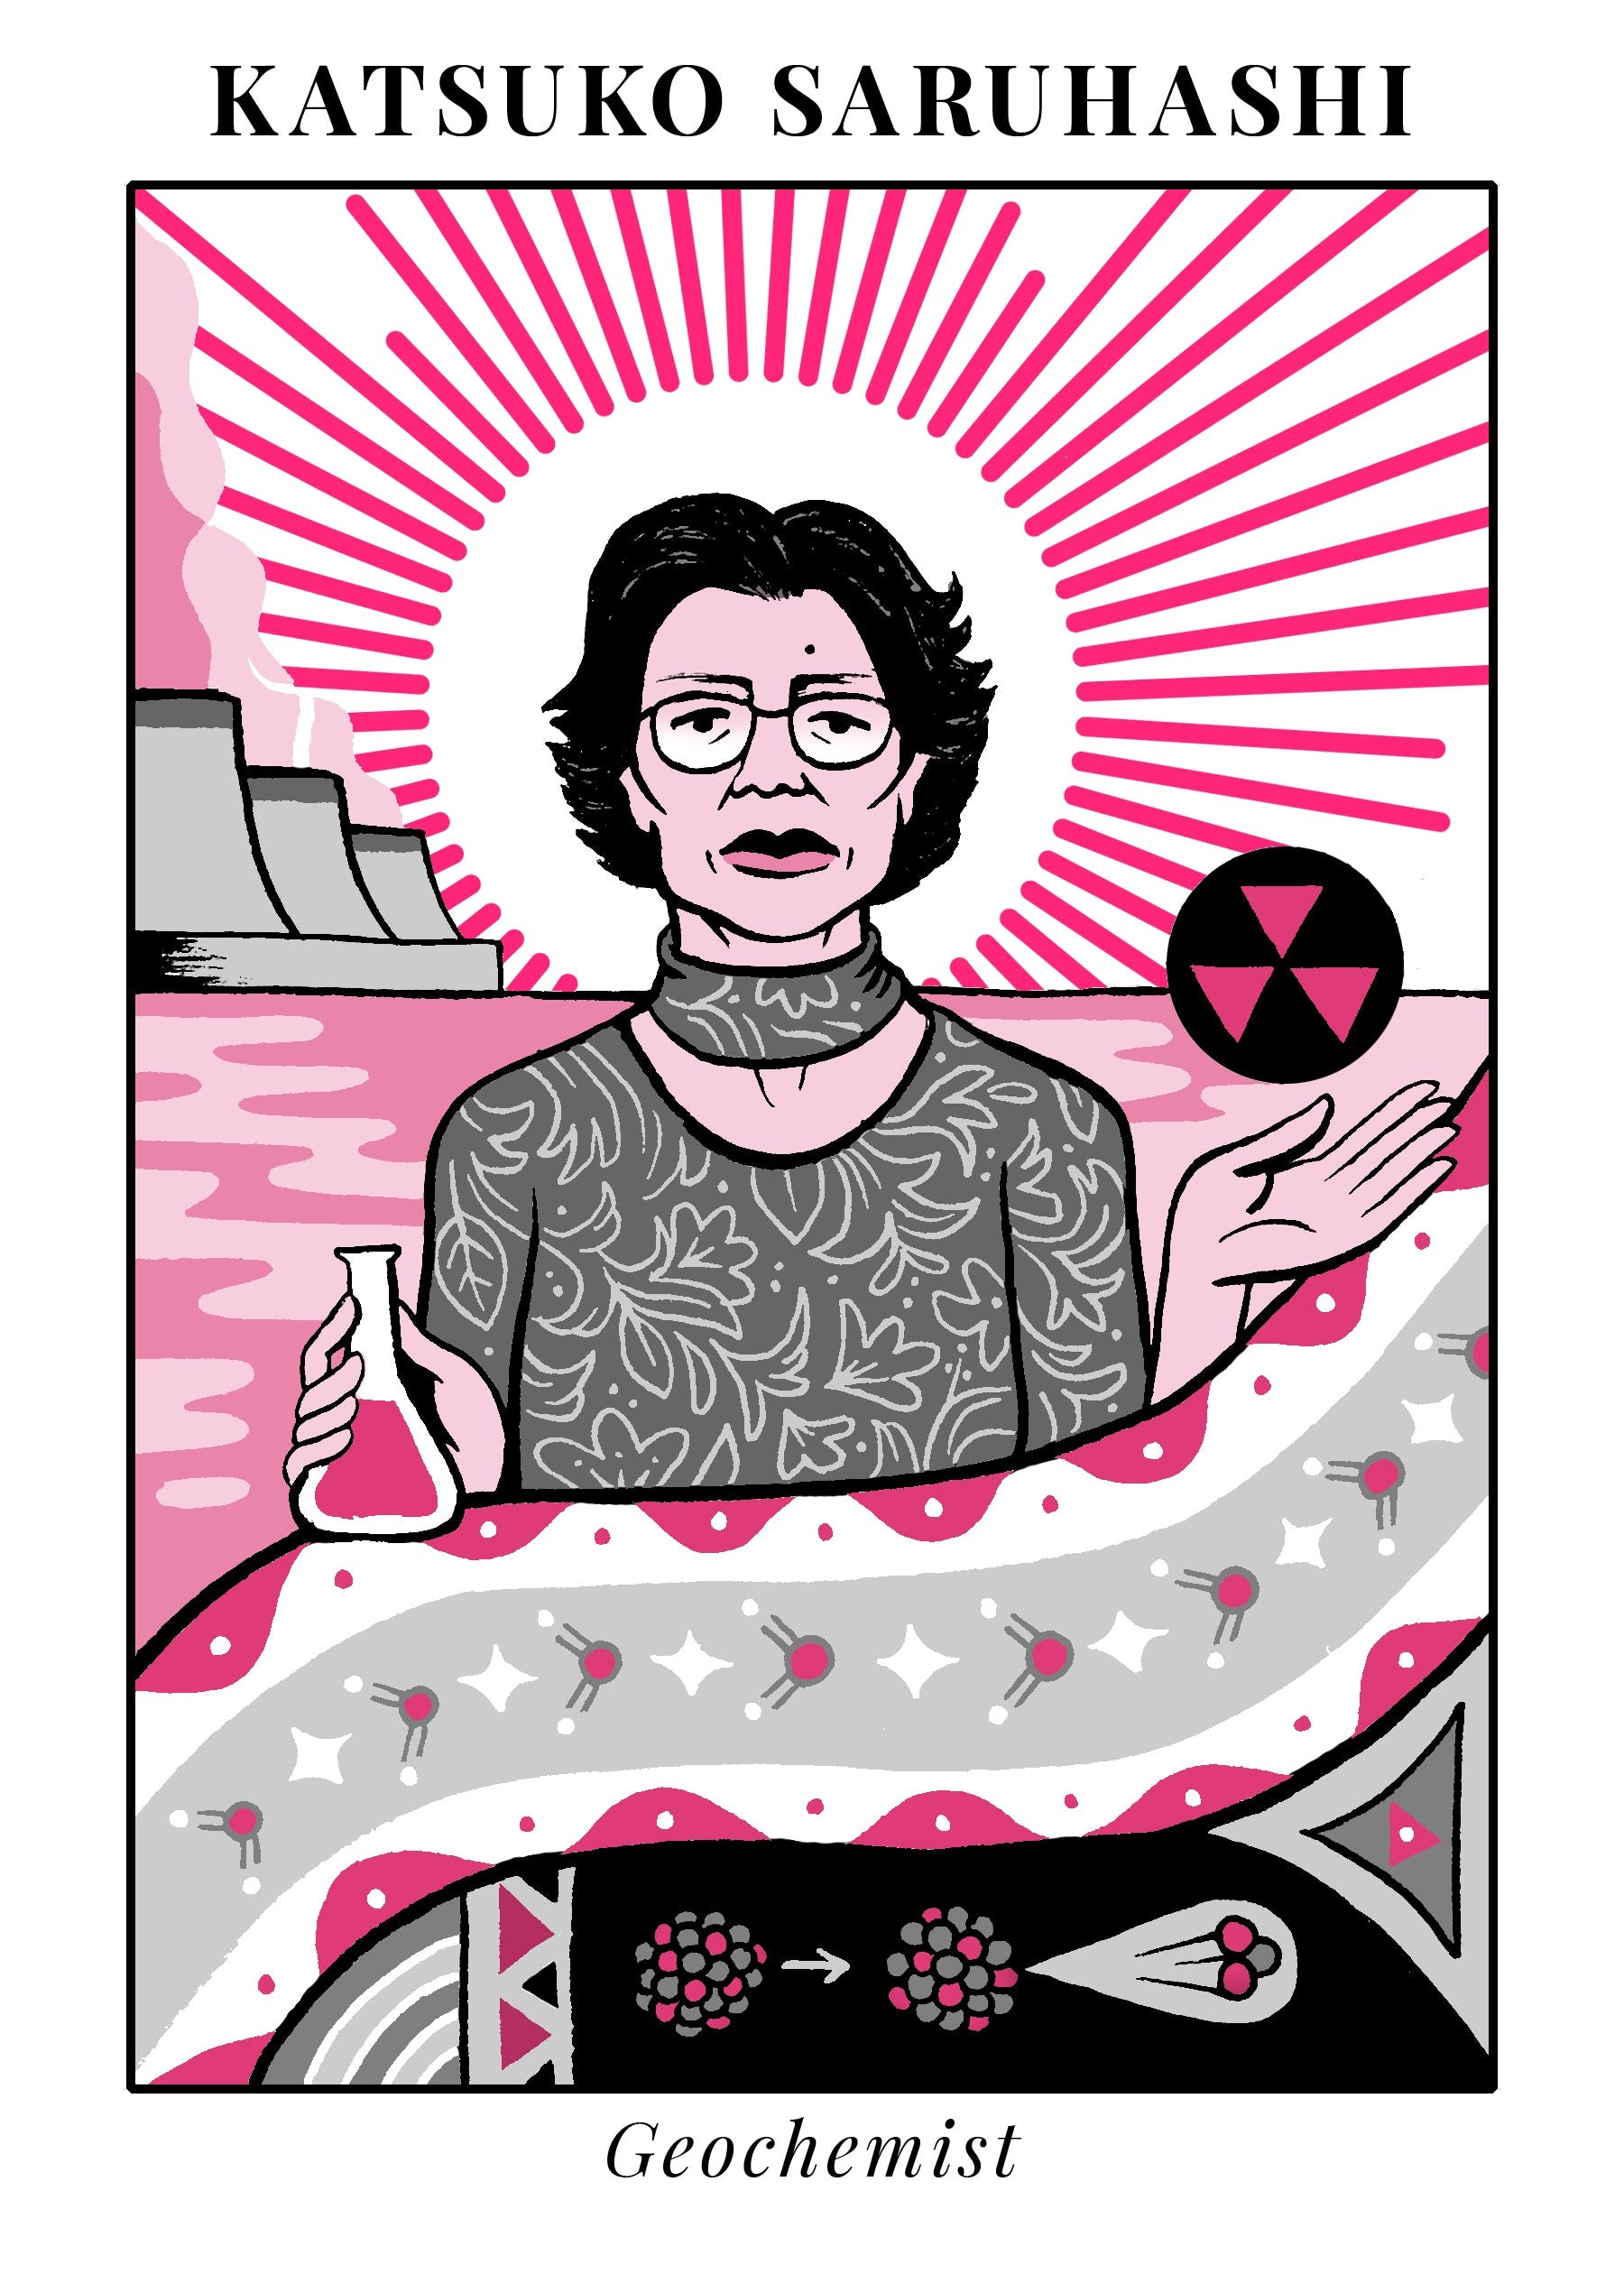 illustration of Katsuko Saruhashi